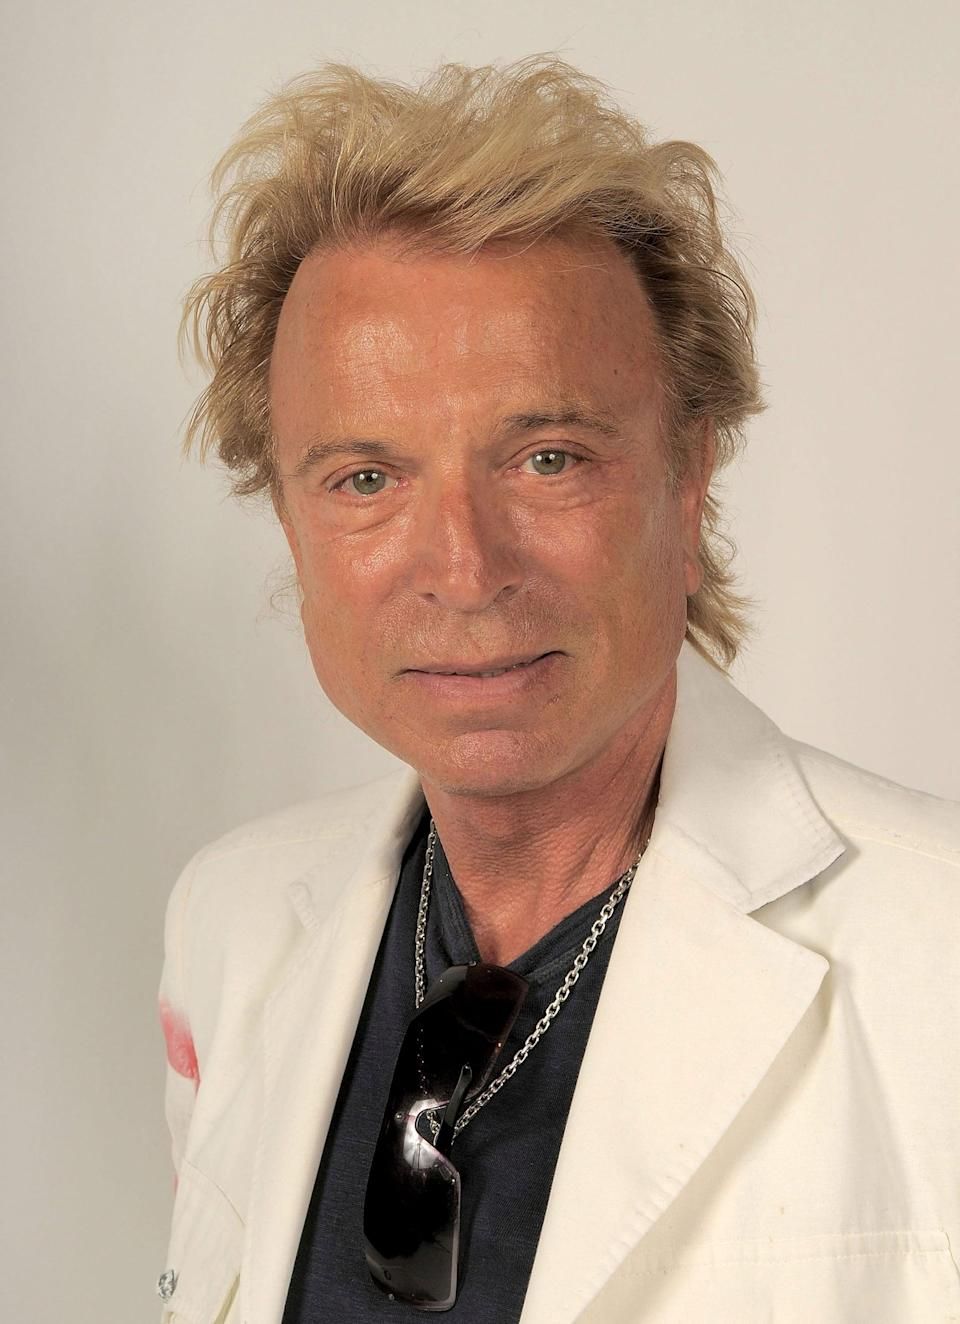 """<p>The famed magician, best known for the magic act Siegfried &amp; Roy, <a href=""""http://deadline.com/2021/01/siegfried-fischbacher-dead-obituary-siegfried-roy-illusionist-was-81-1234673557/"""" class=""""link rapid-noclick-resp"""" rel=""""nofollow noopener"""" target=""""_blank"""" data-ylk=""""slk:died from pancreatic cancer on Jan. 13"""">died from pancreatic cancer on Jan. 13</a> at his home in Las Vegas. He was 81.</p>"""